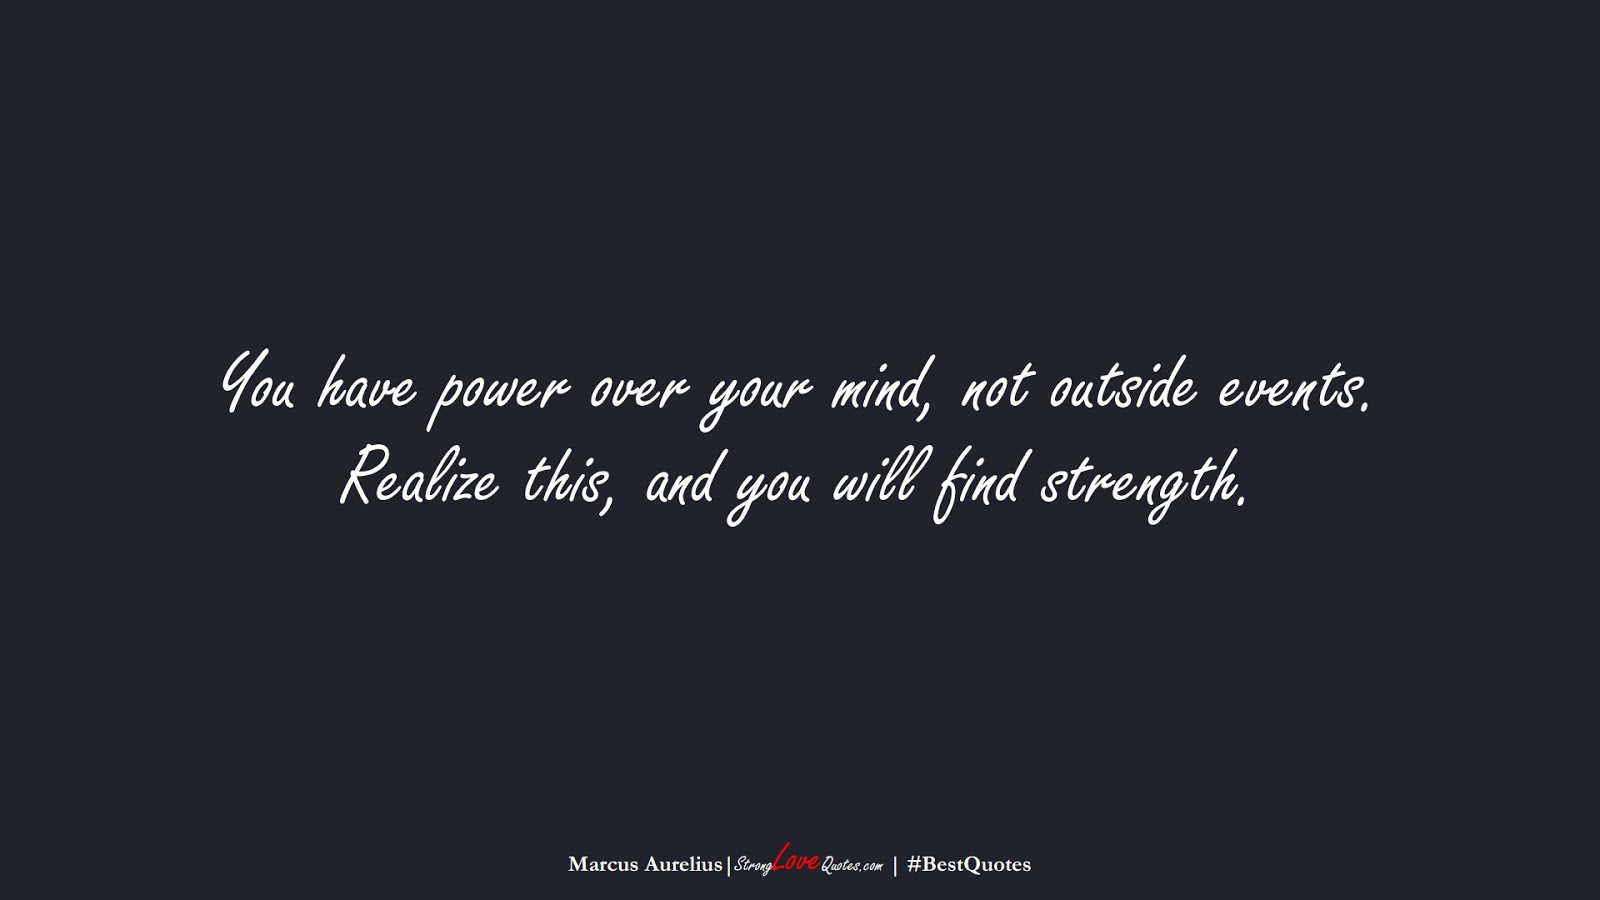 You have power over your mind, not outside events. Realize this, and you will find strength. (Marcus Aurelius);  #BestQuotes